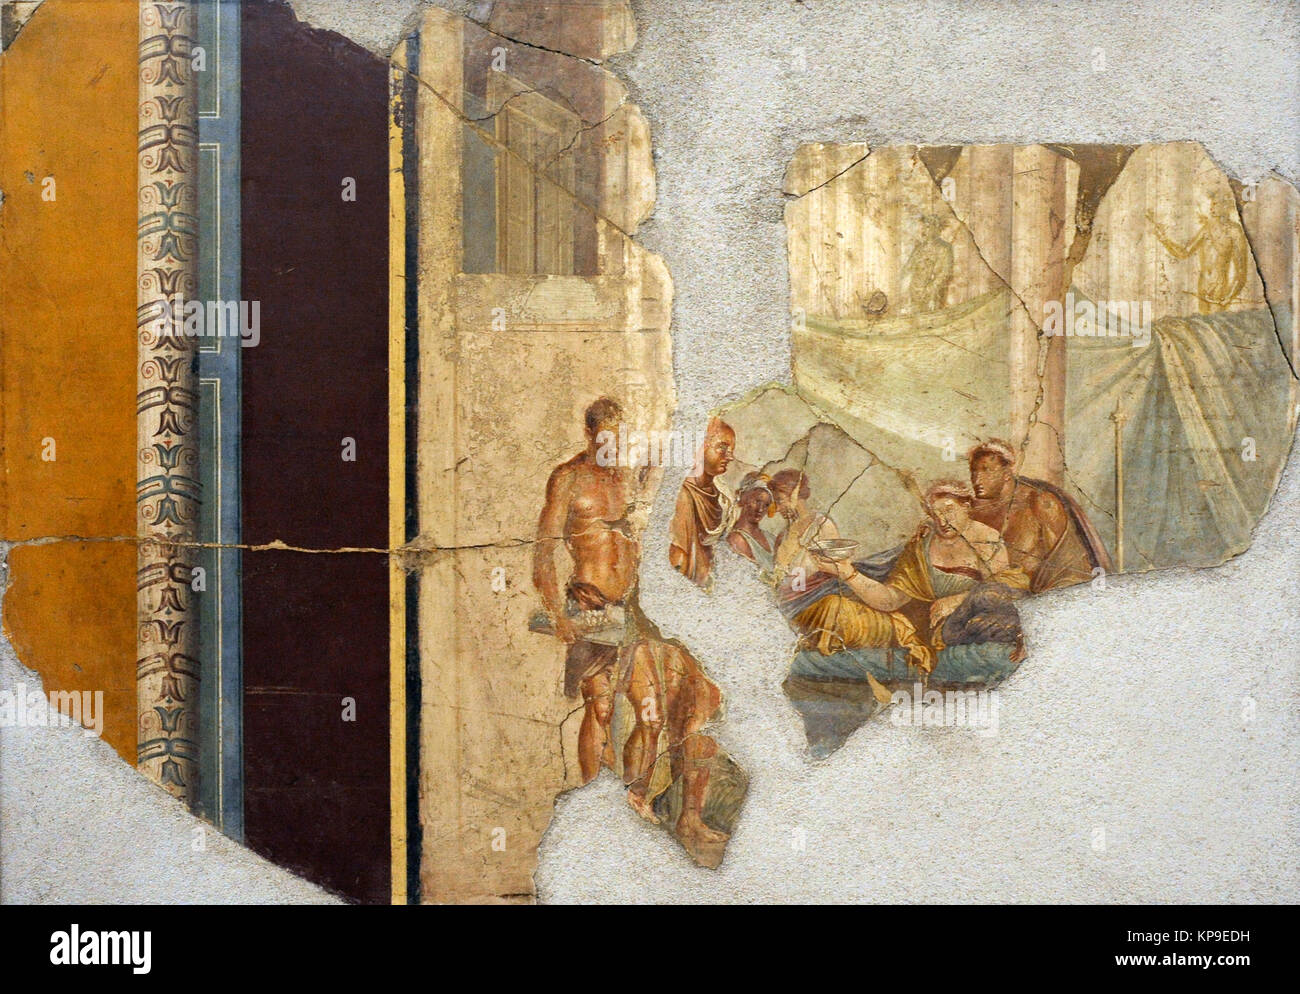 Roman fresco depicting, on the left, parts of an edicle decorated with chiselled motifs. Inside, a banquet scene. - Stock Image